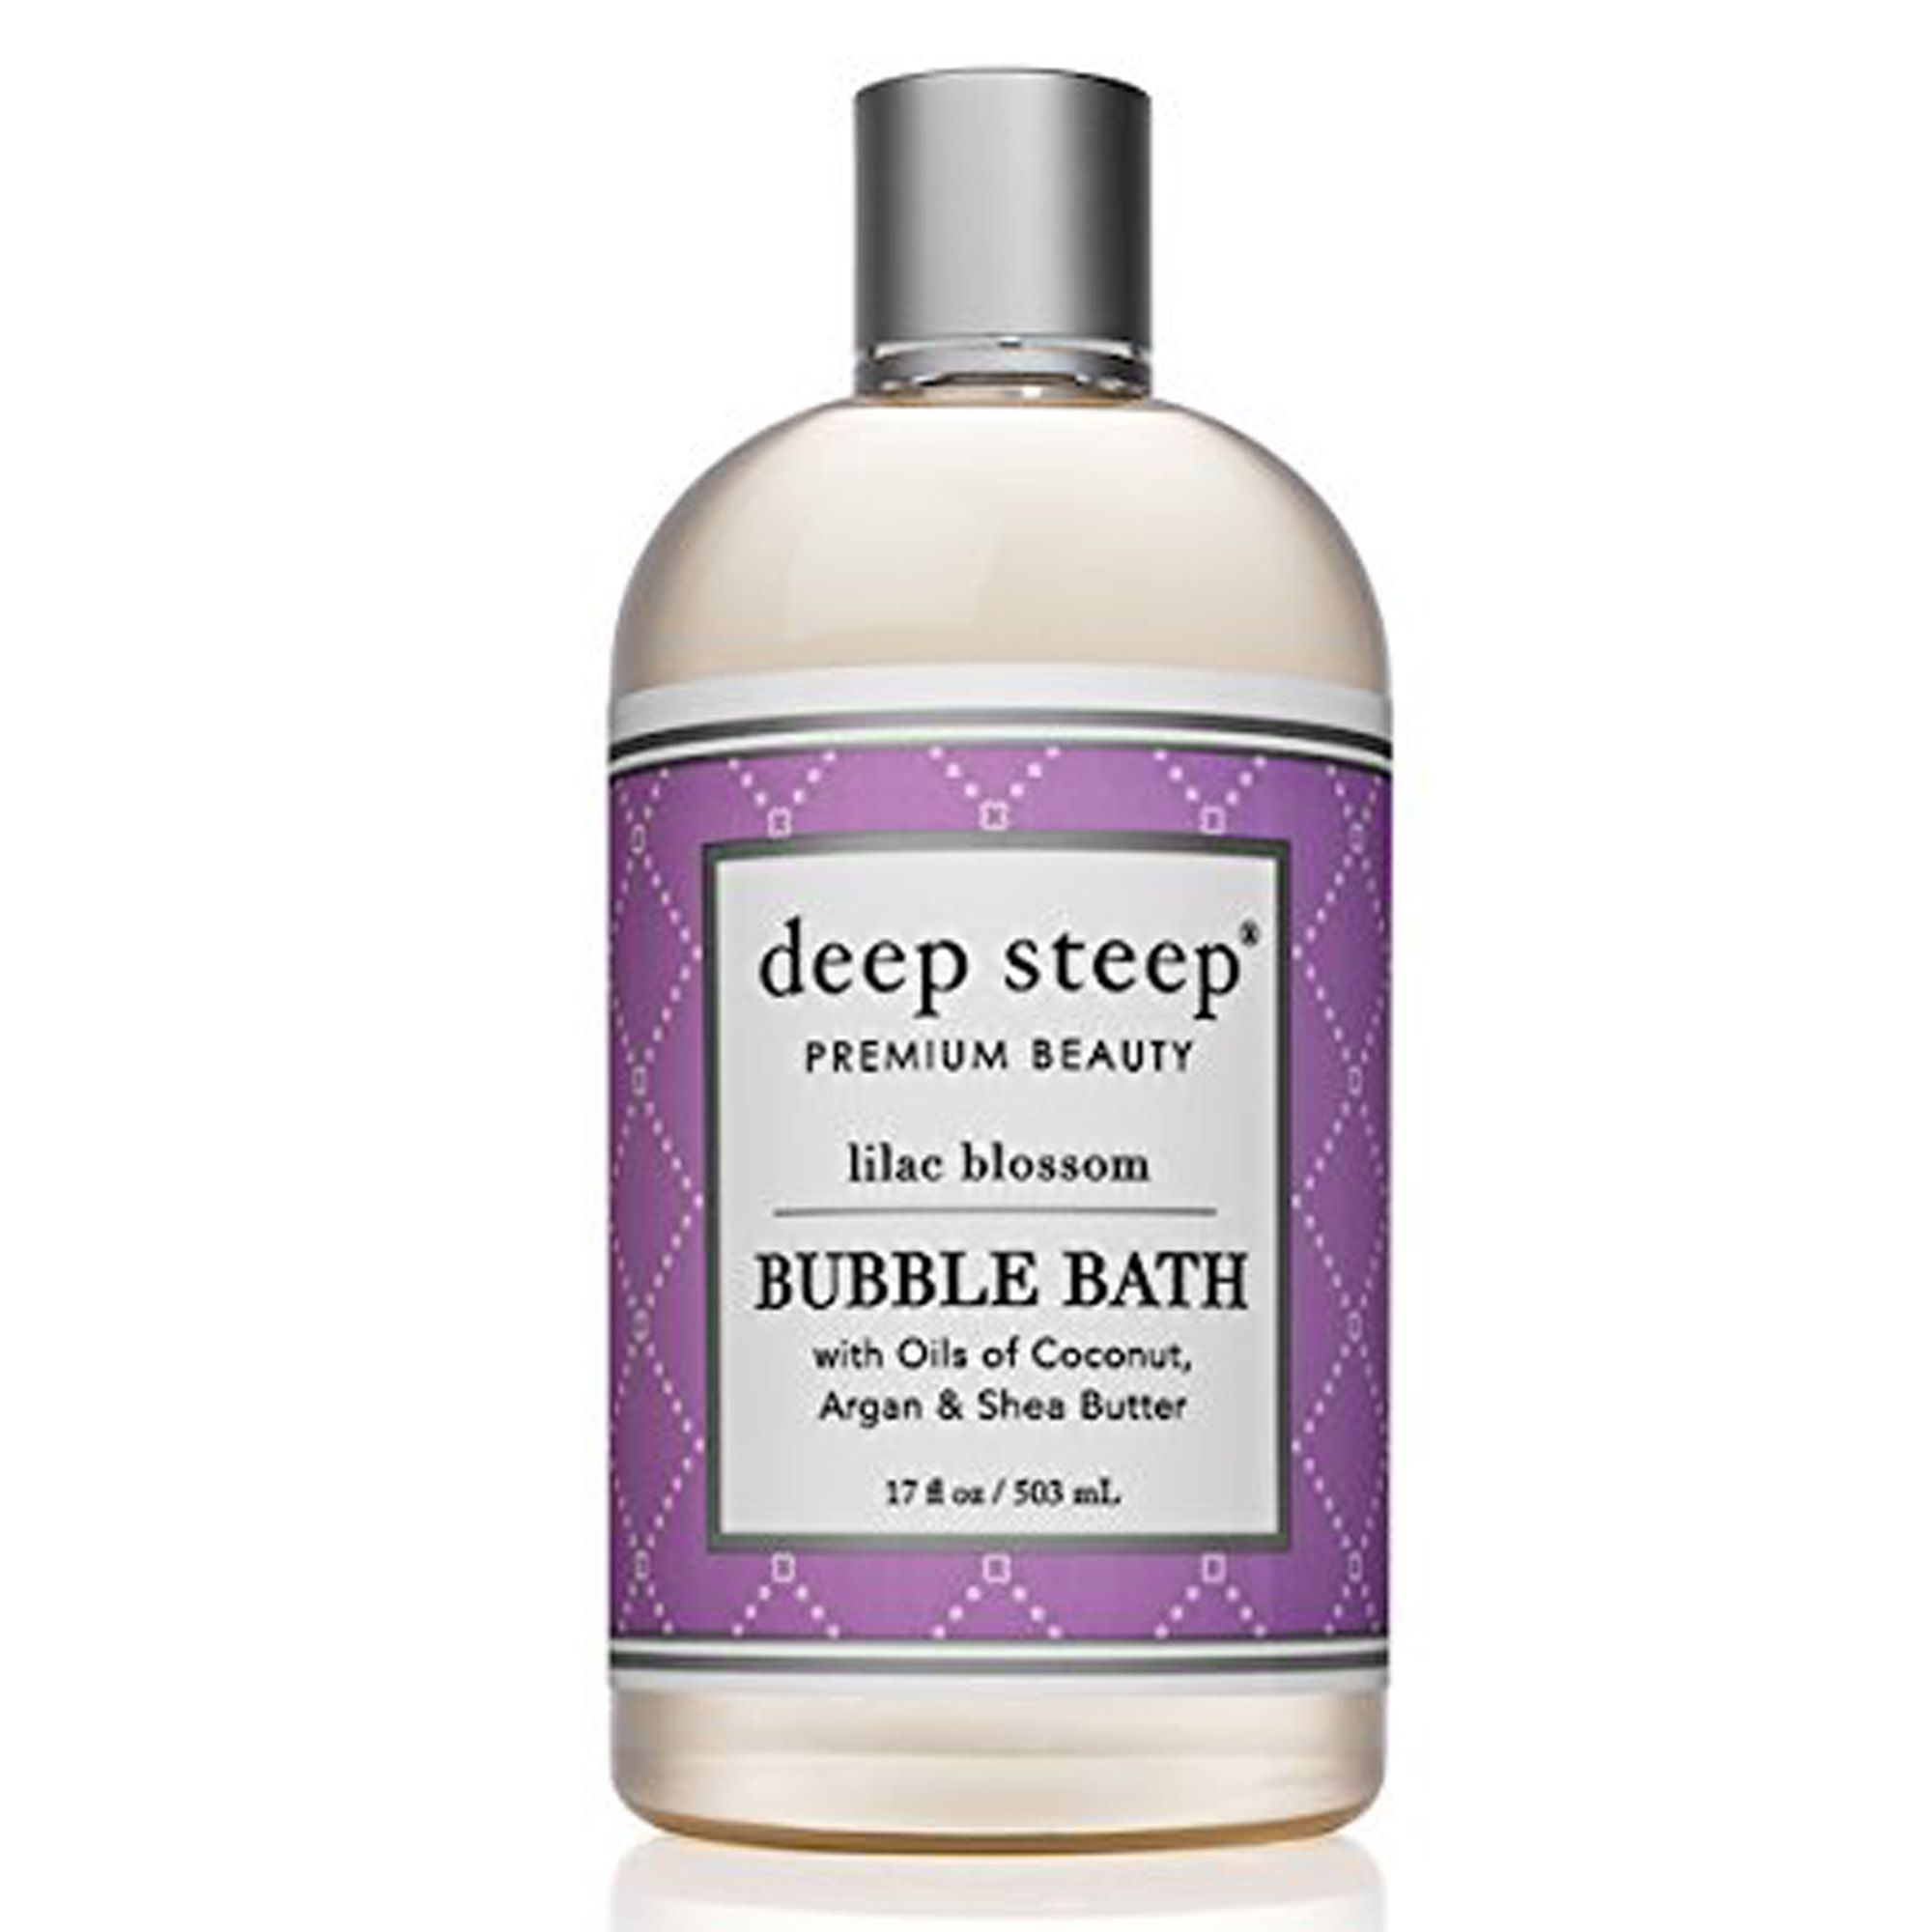 Watch 10 Bubble Bath Products That Are Perfect for a Relaxing Night In video